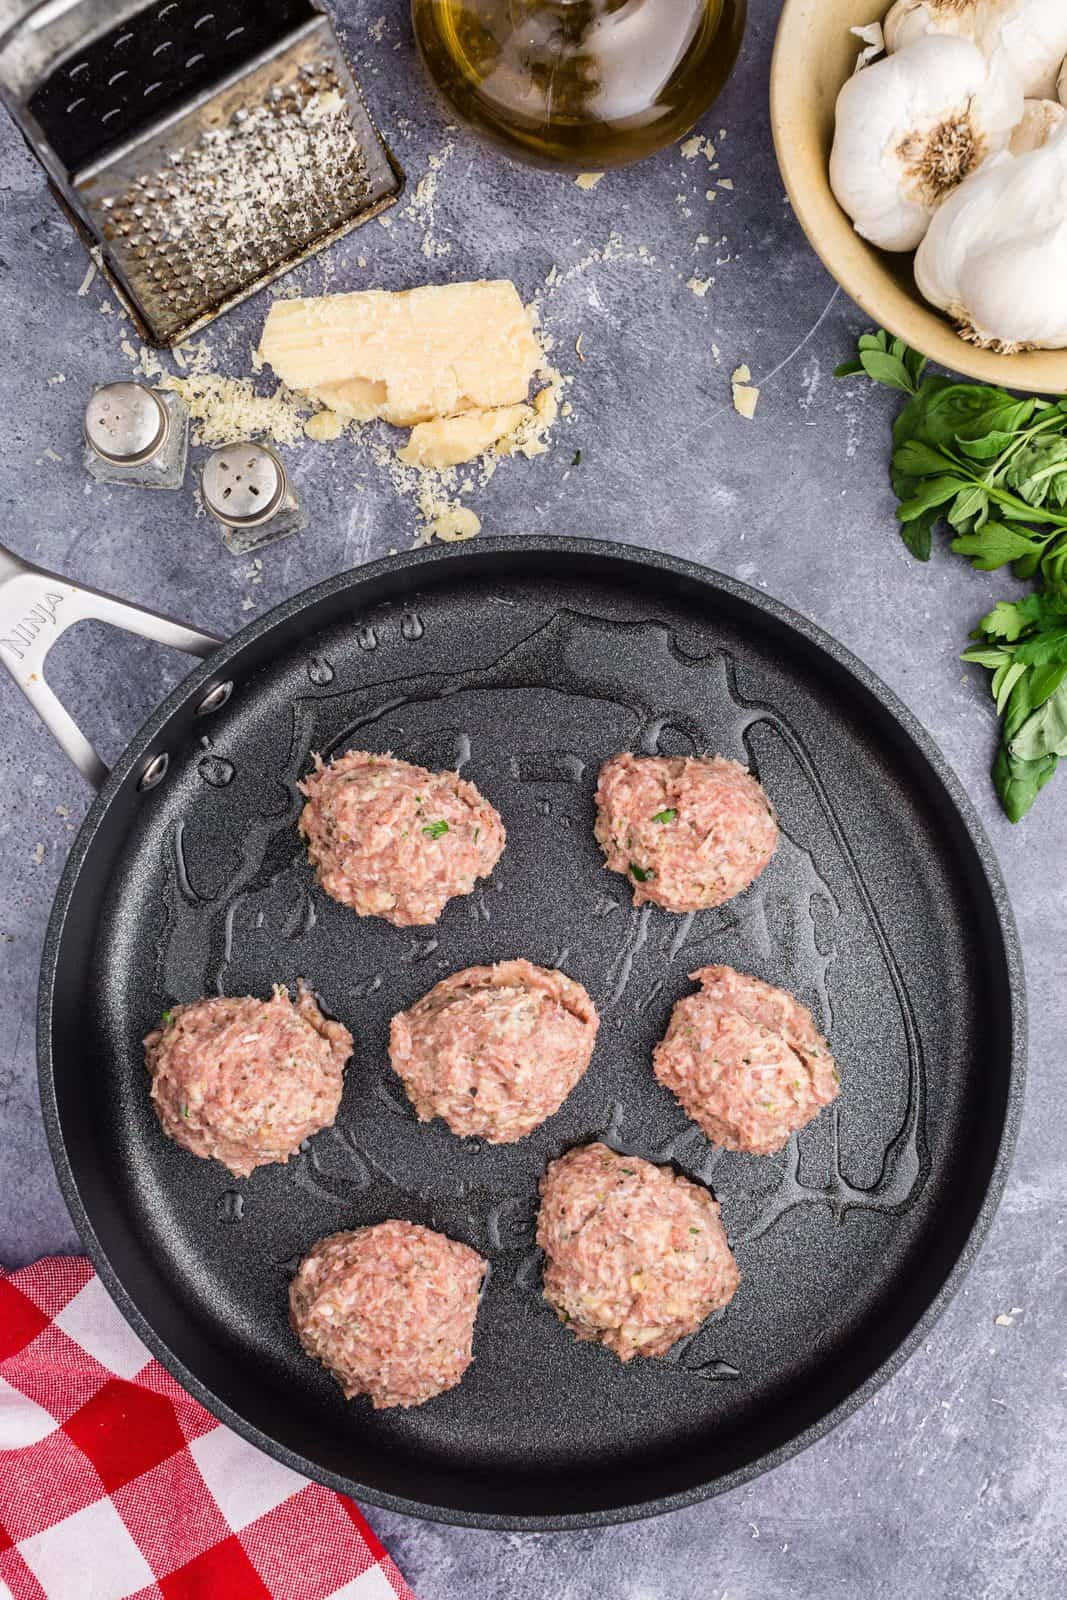 Meatballs portioned and added to oiled skillet.